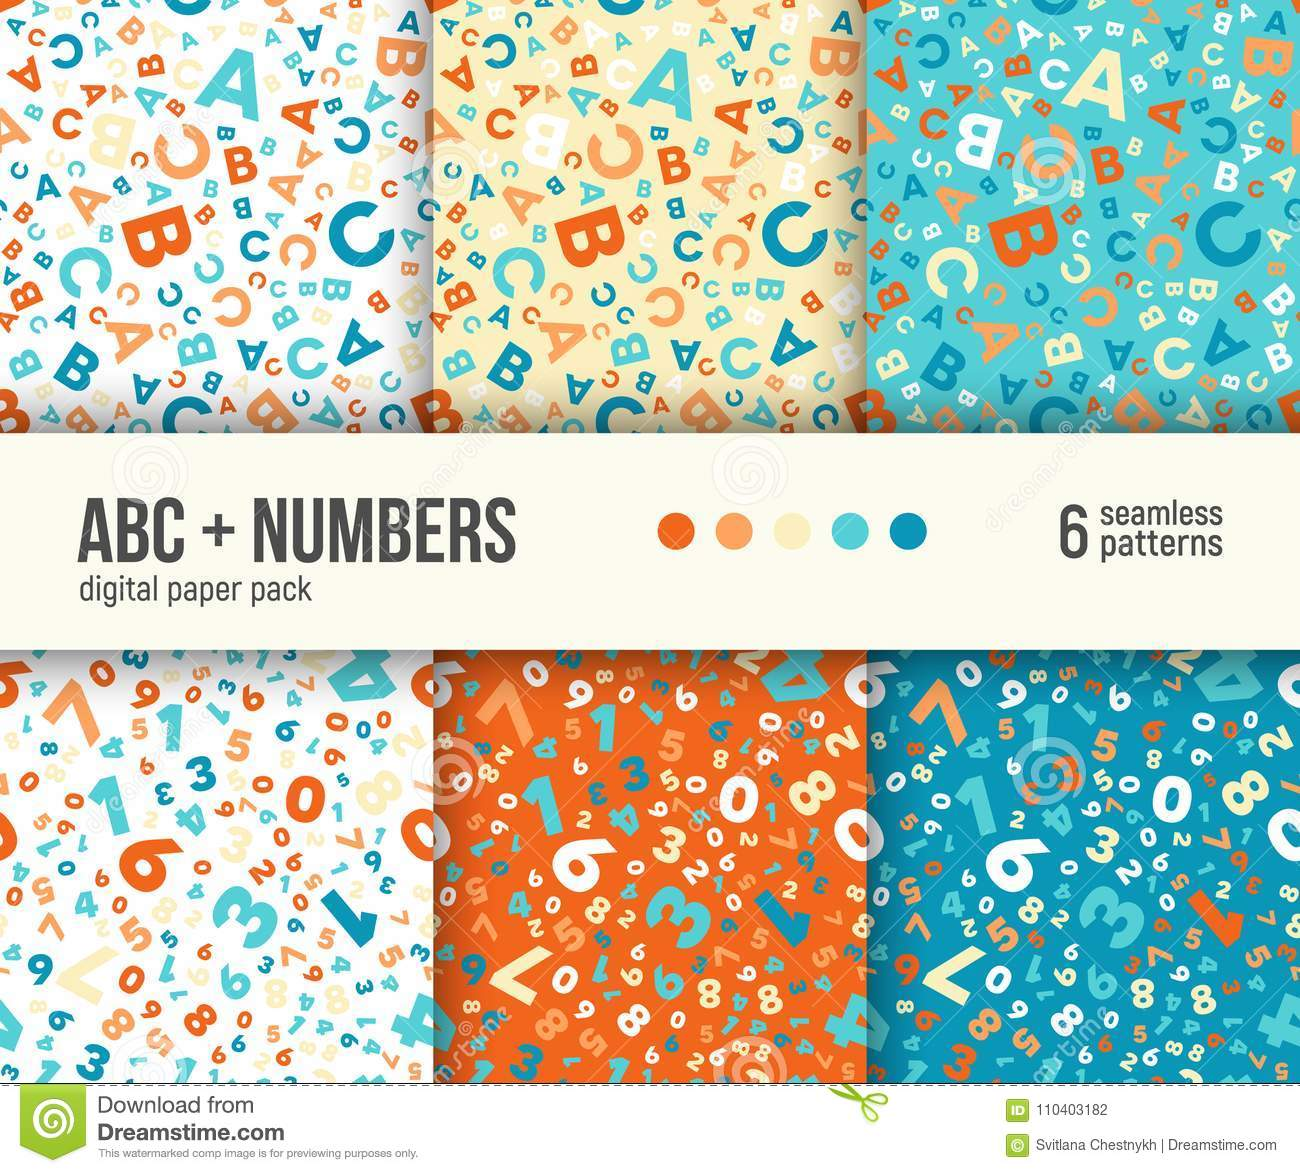 Digital paper pack, 6 abstract patterns, ABC and math backgrounds for kids education